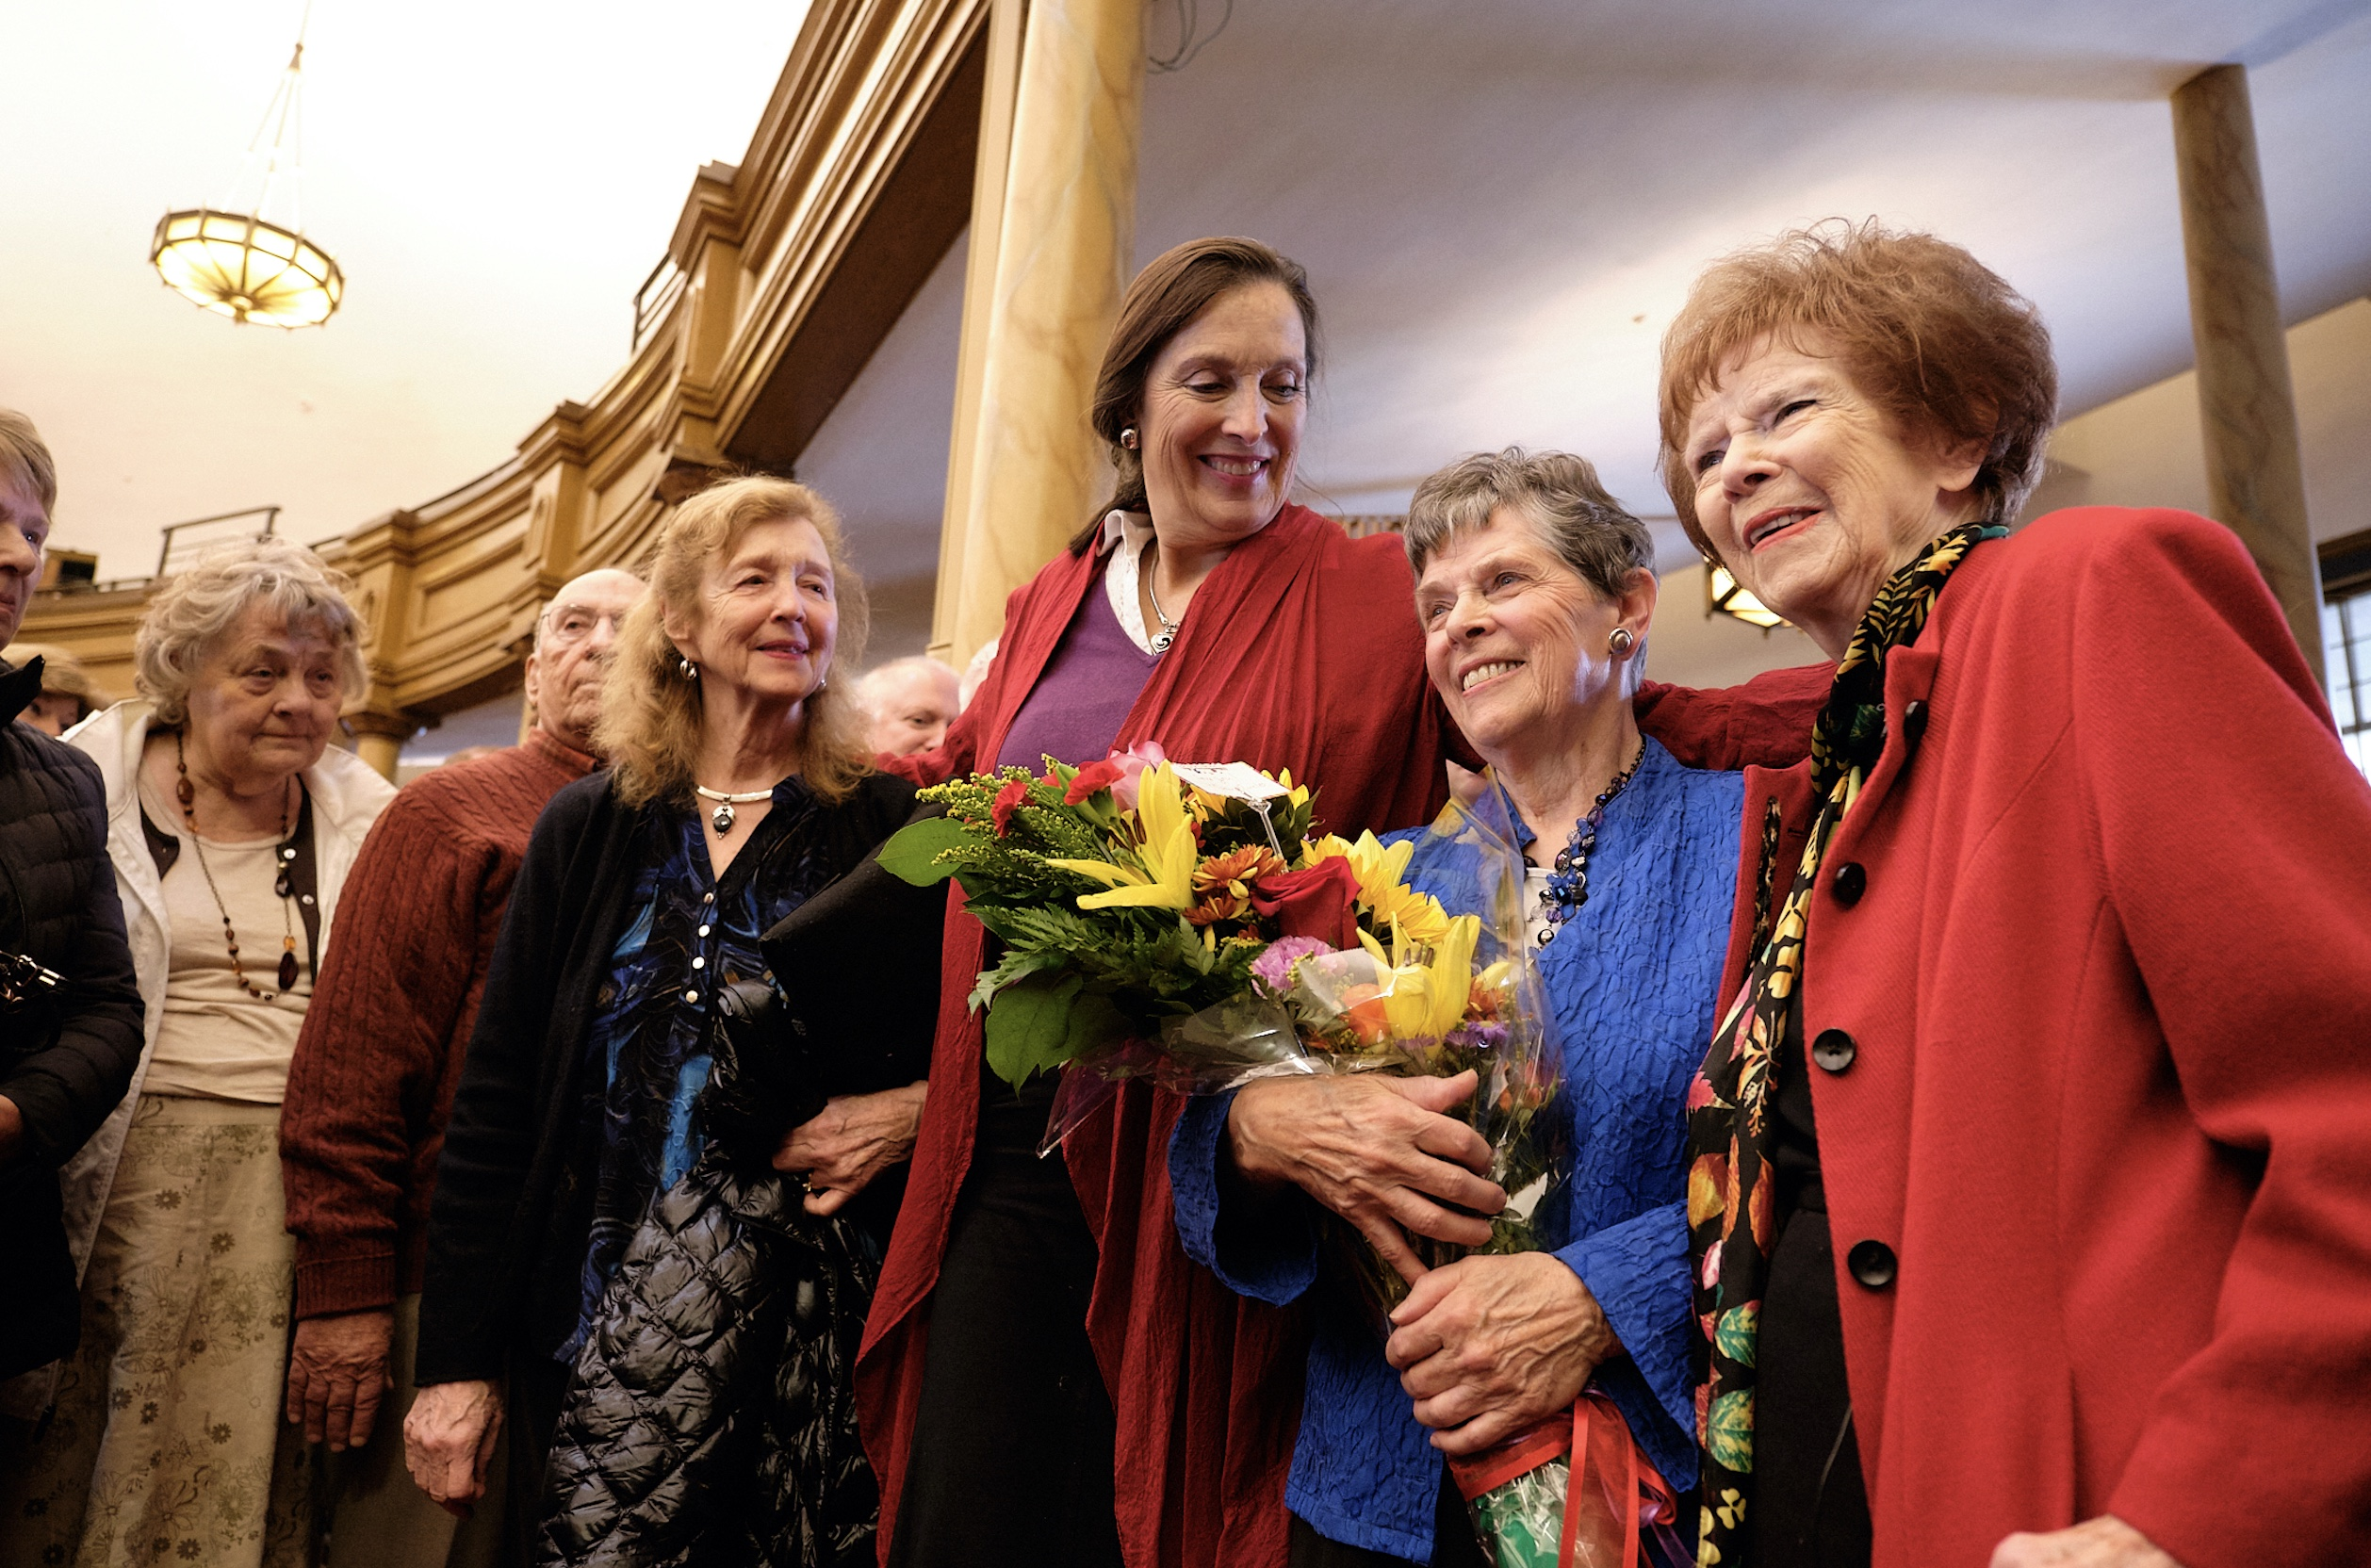 Retiring Temple Square organist Bonnie Goodliffe, holding flowers, stands for a photo among family and friends at the Salt Lake Tabernacle on Monday, Oct. 21, 2019.